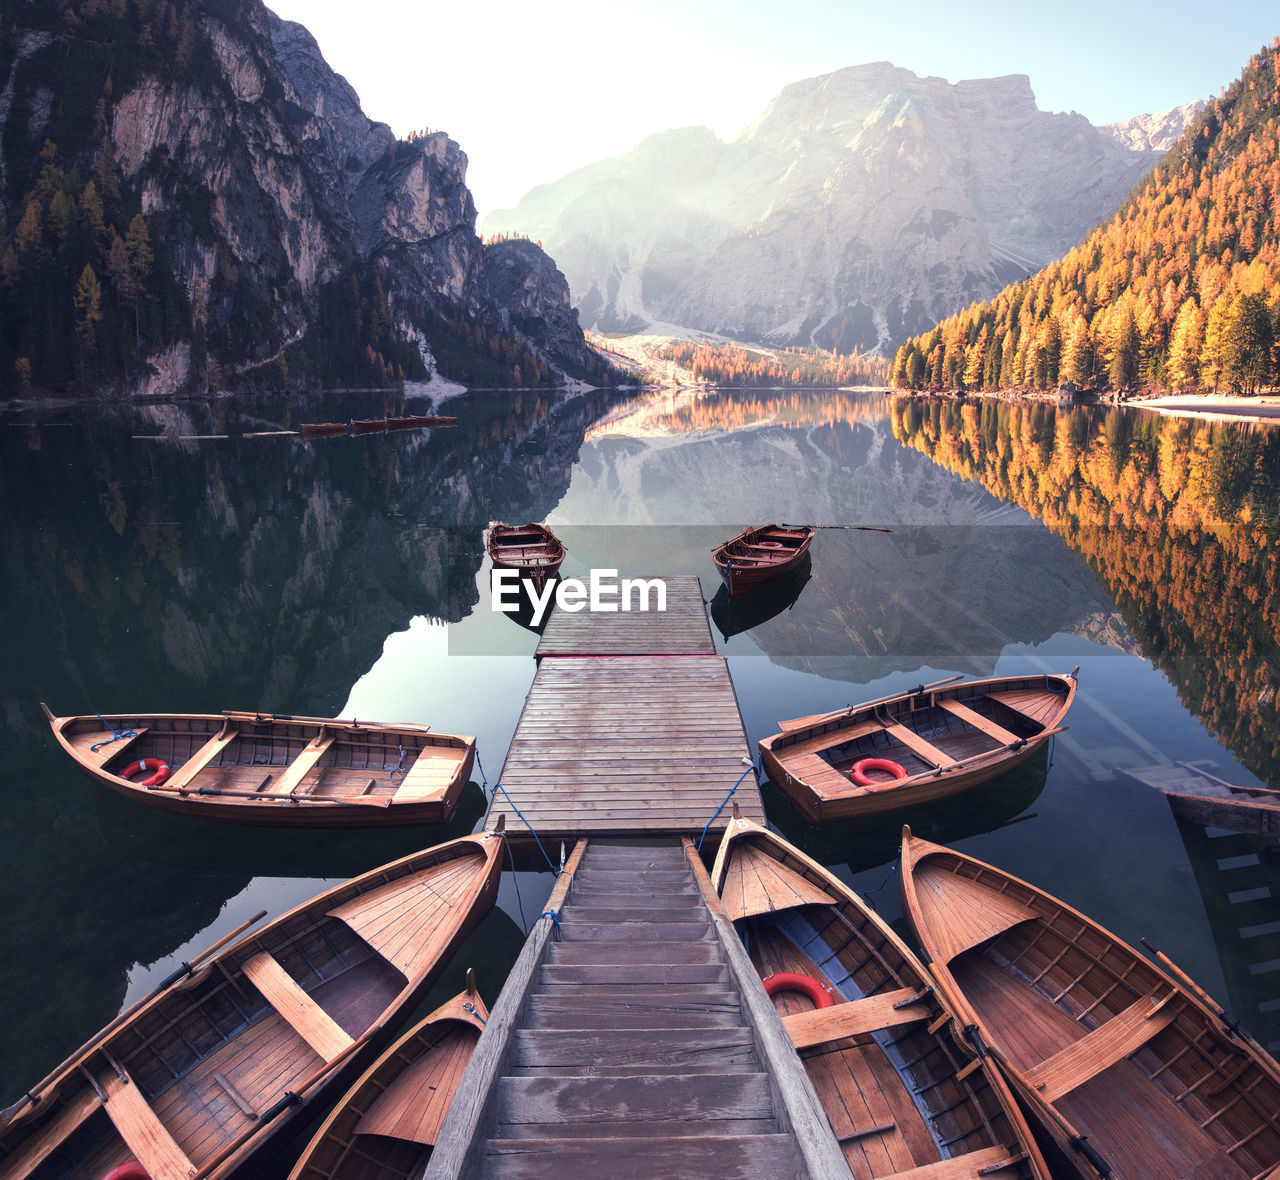 Boats moored around jetty in lake against mountains